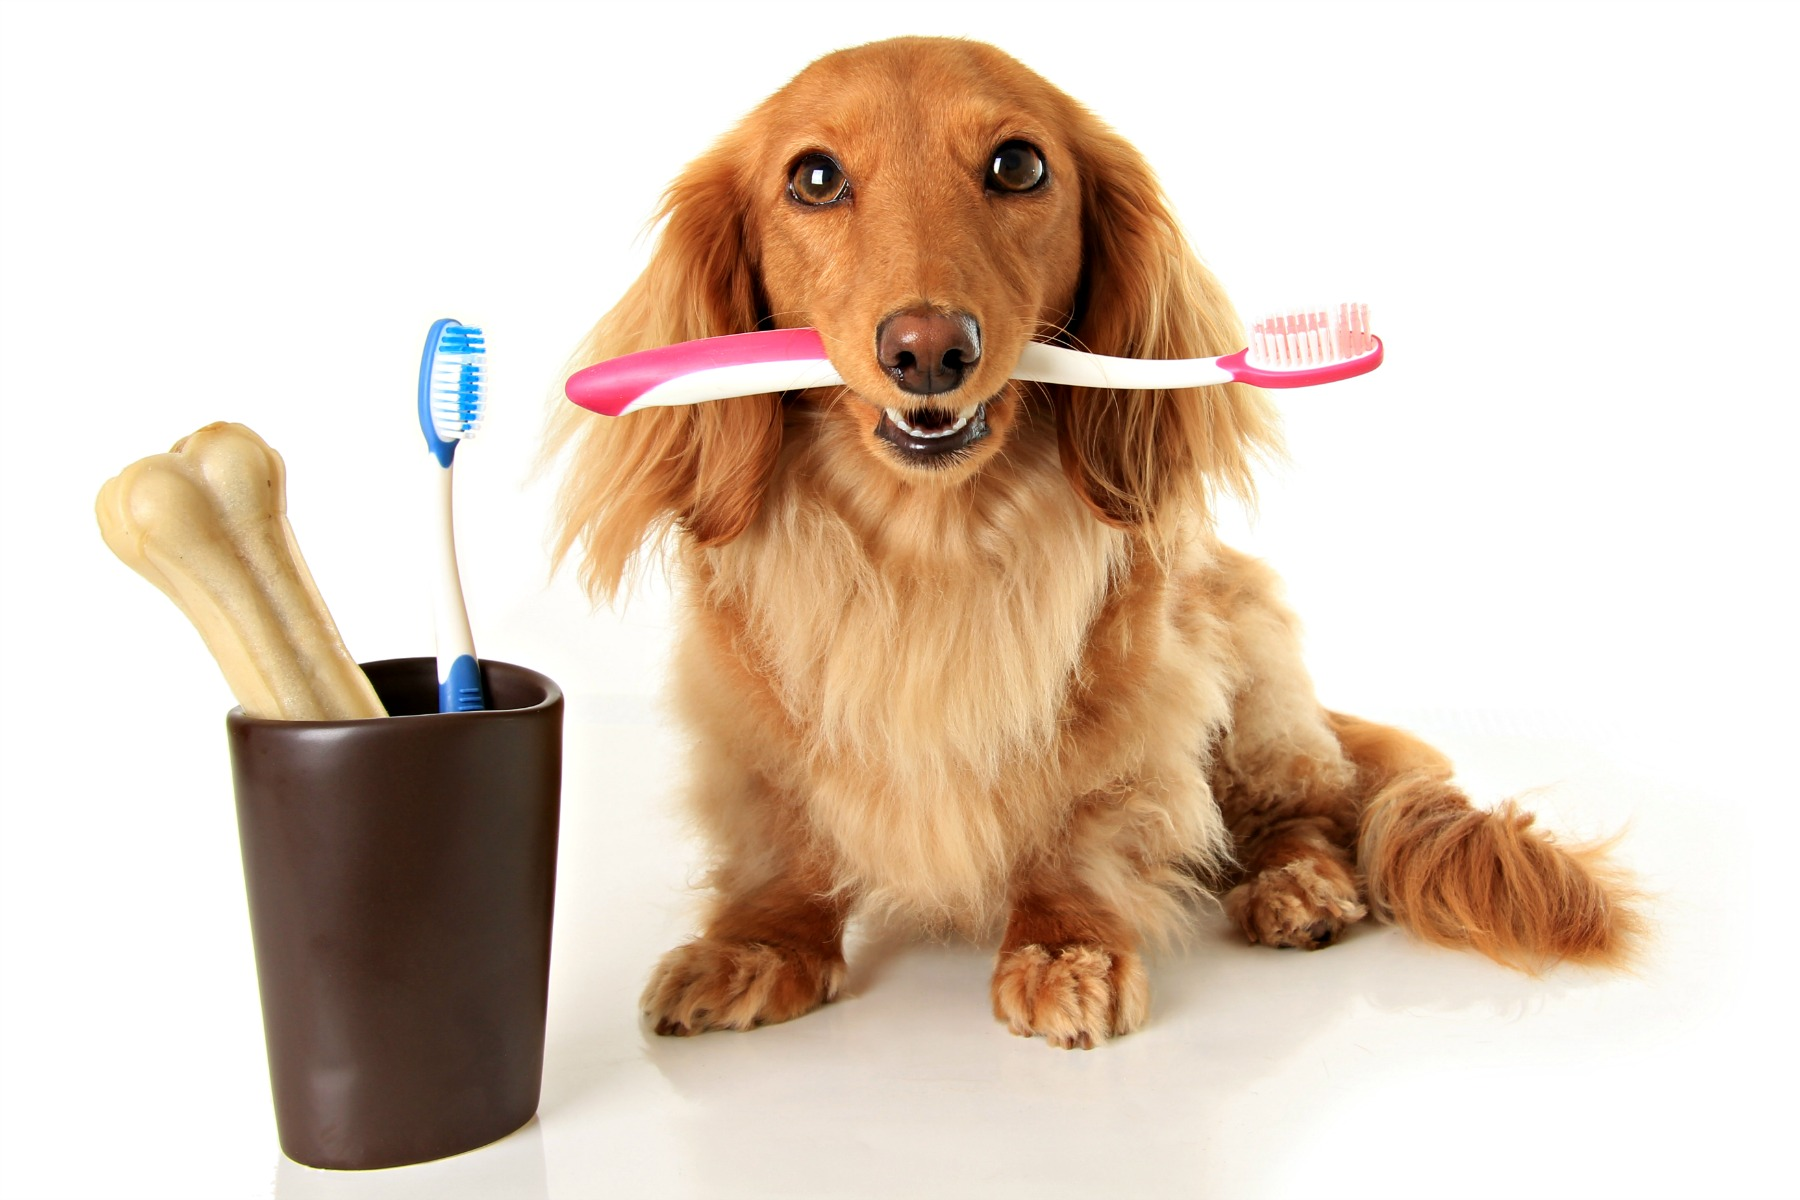 Each of the long lasting dog chews listed above effectively serves as a toothbrush for your dog!